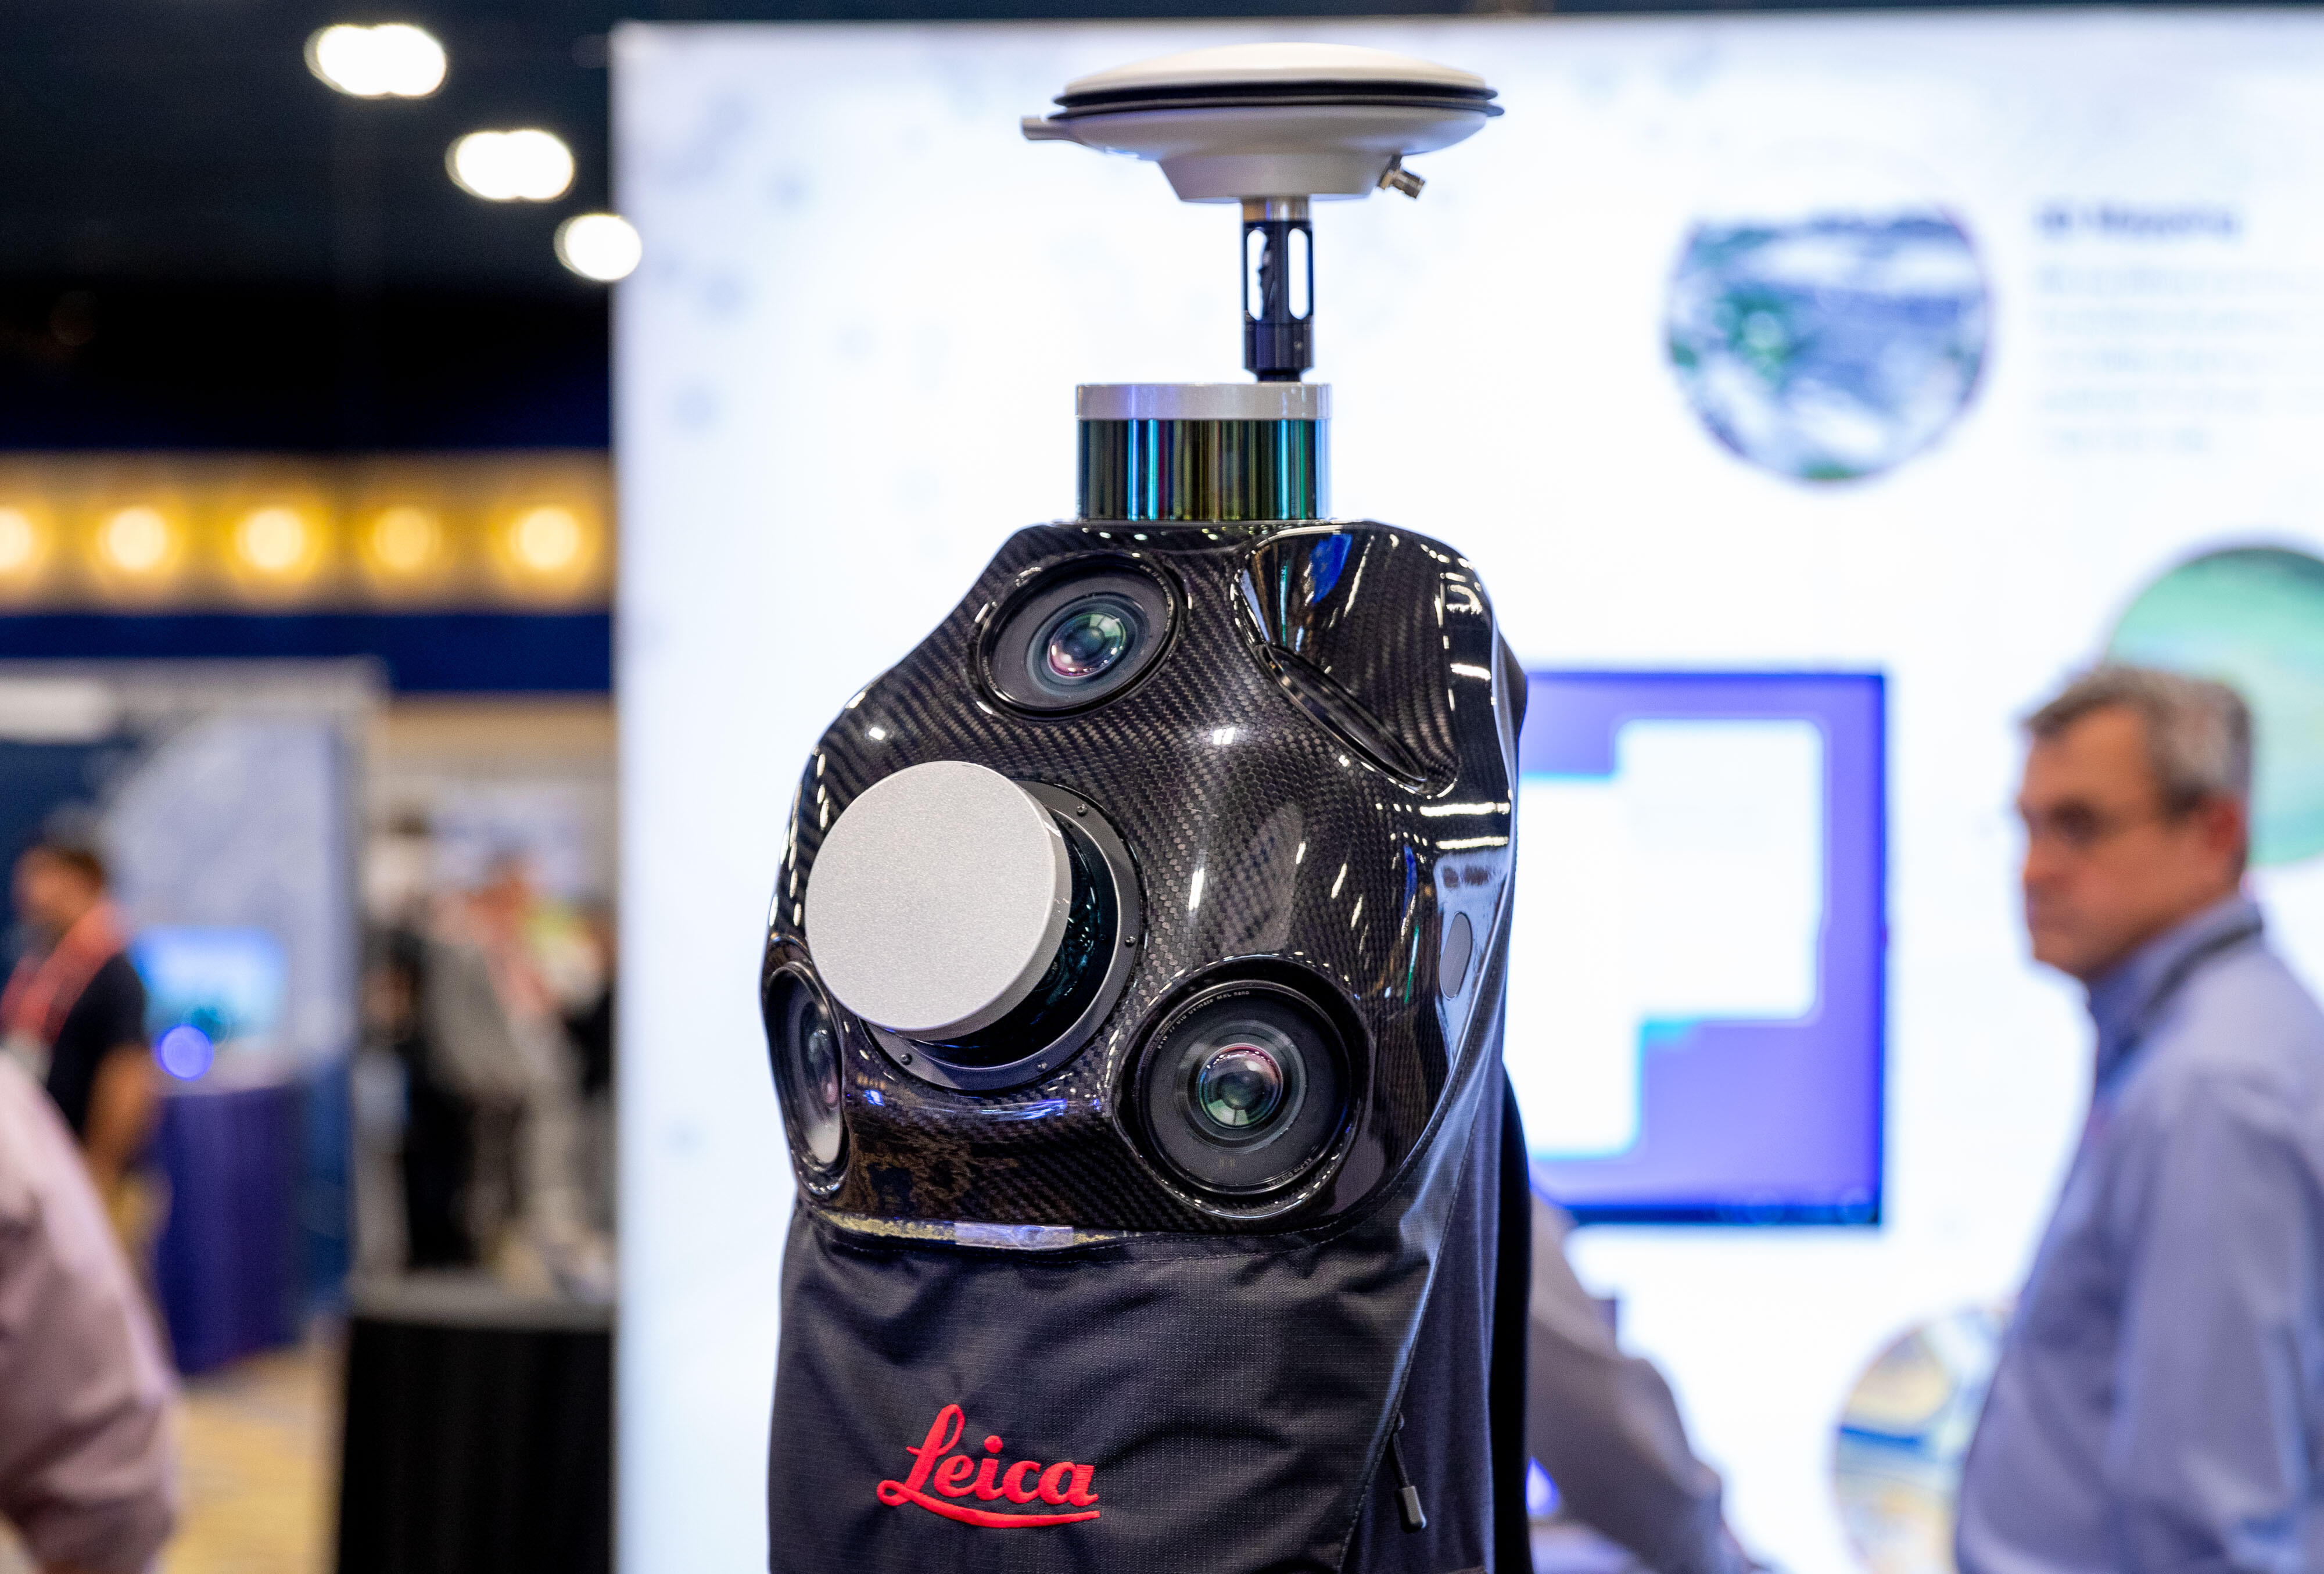 Leica Geosystems Pegasus scanning backpack